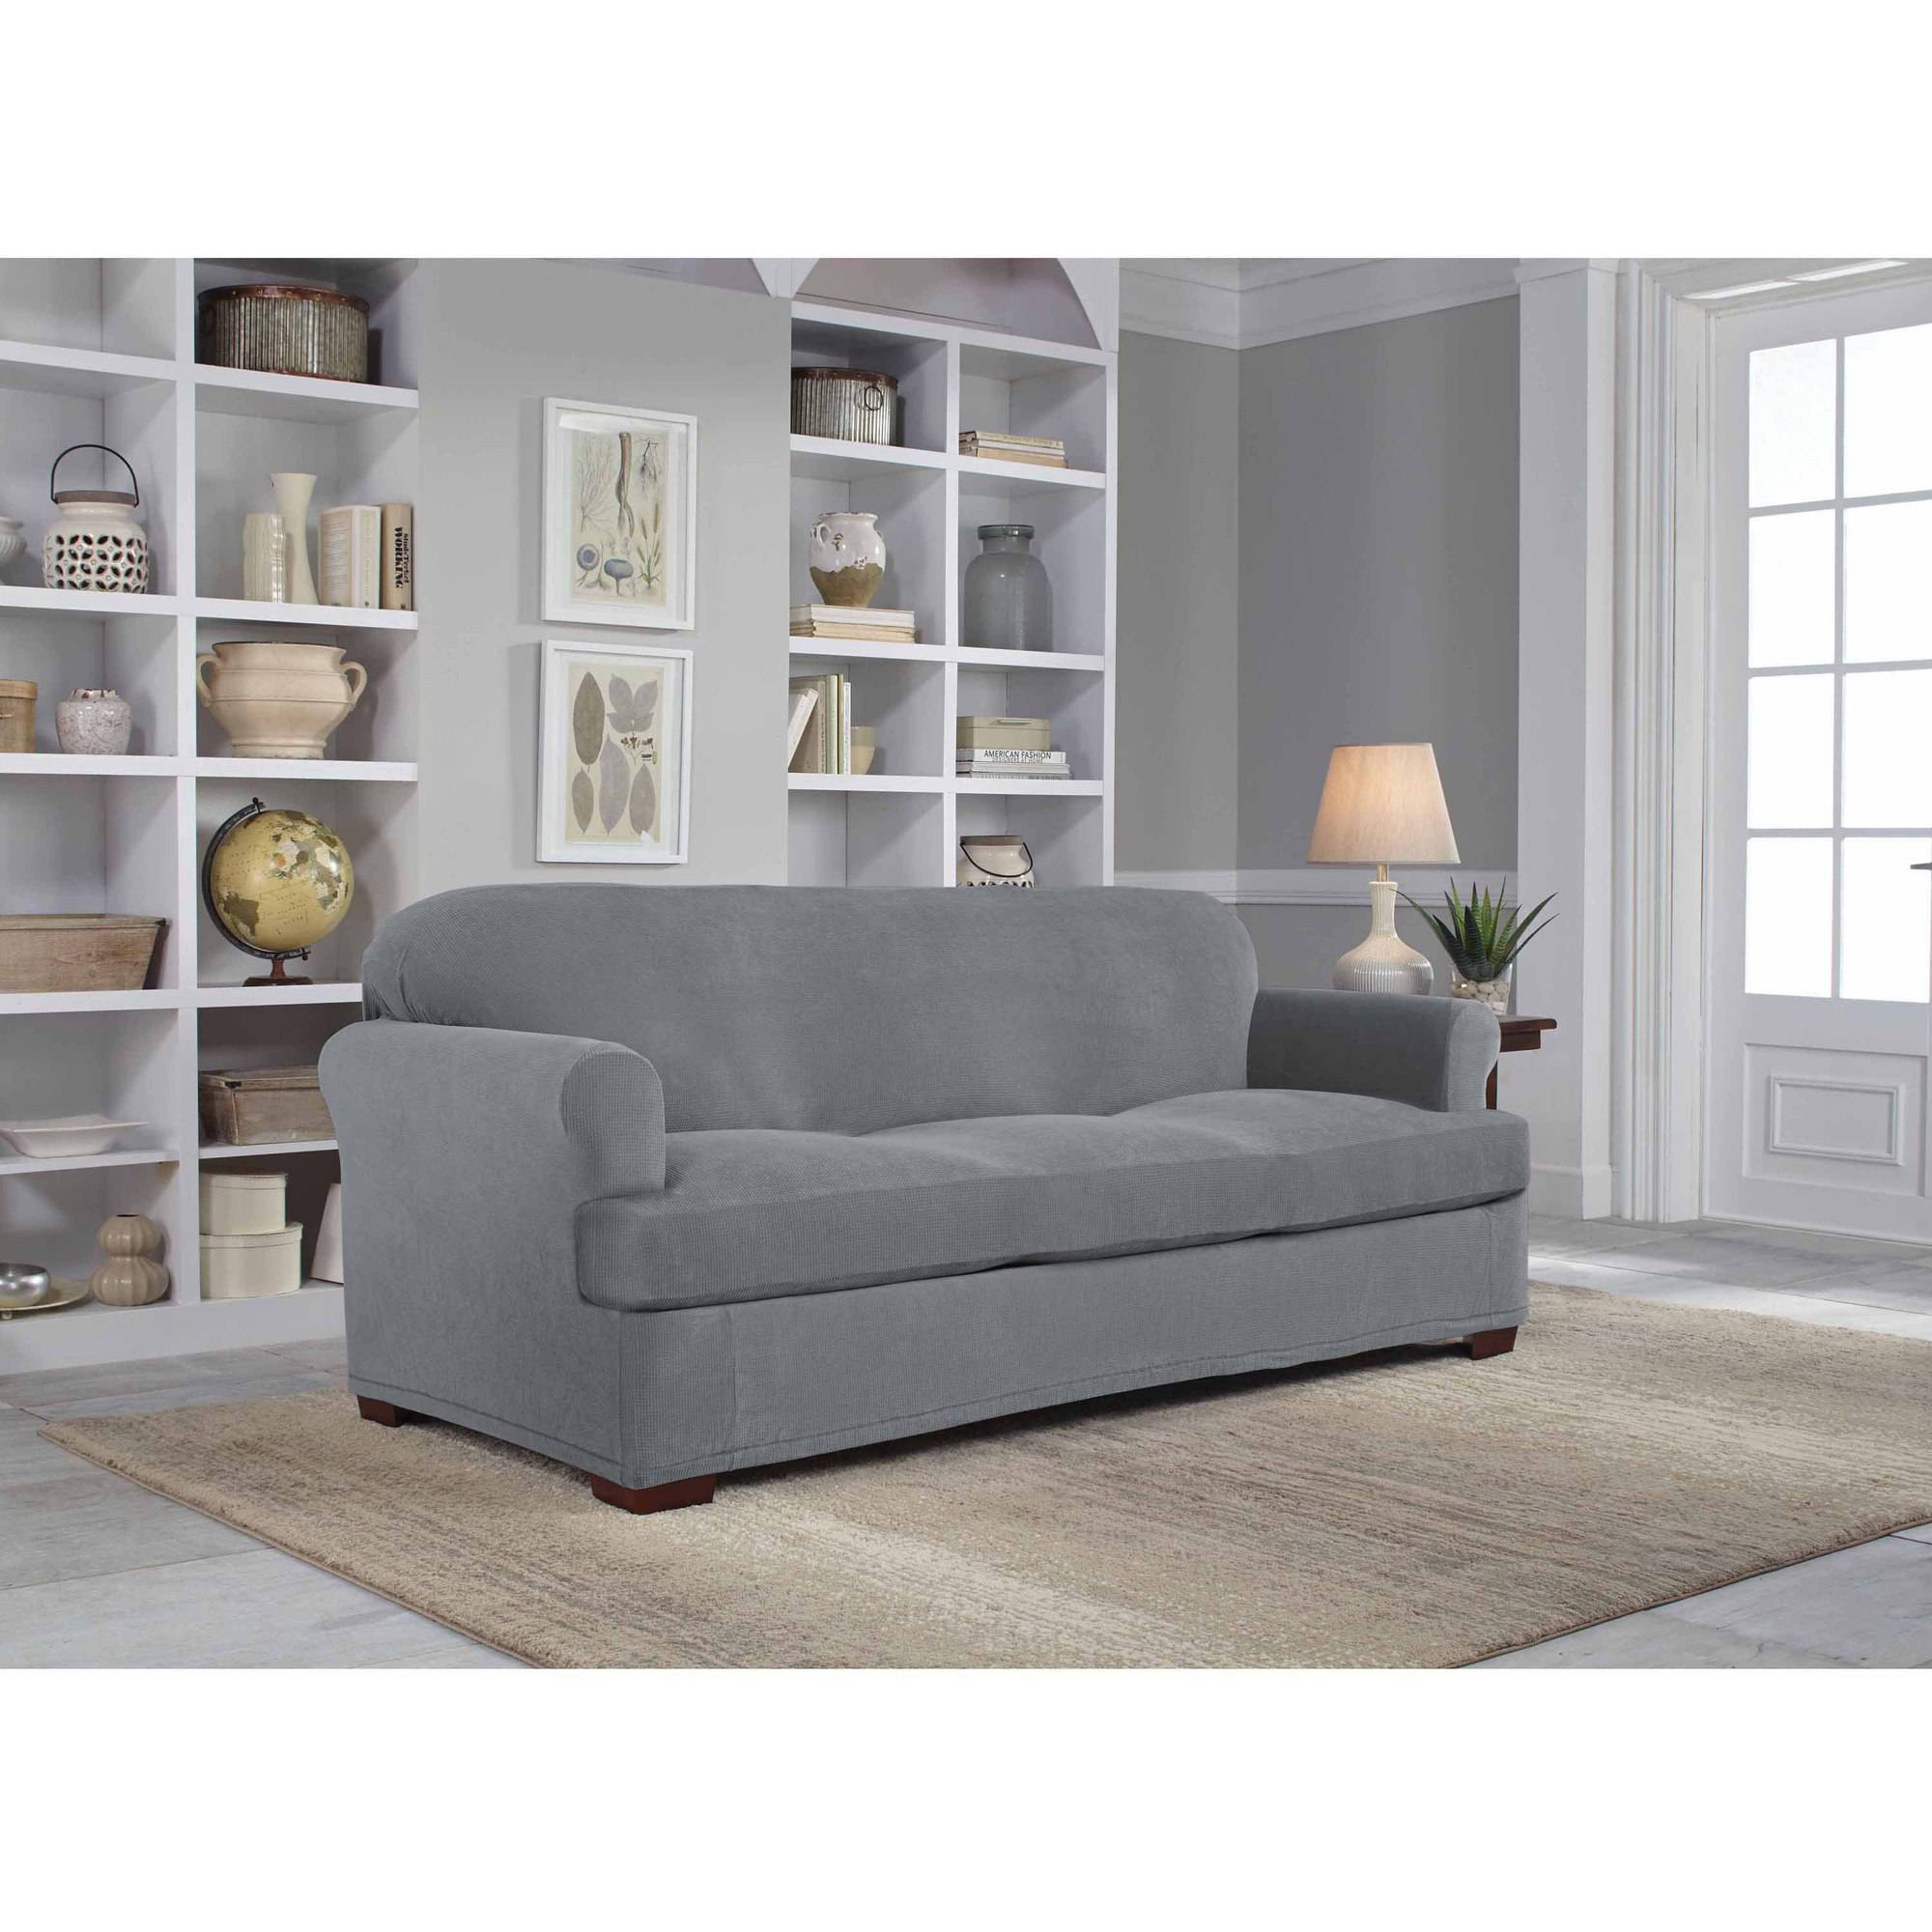 Serta Stretch Grid Slipcover Sofa 2 Piece T Cushion Walmart